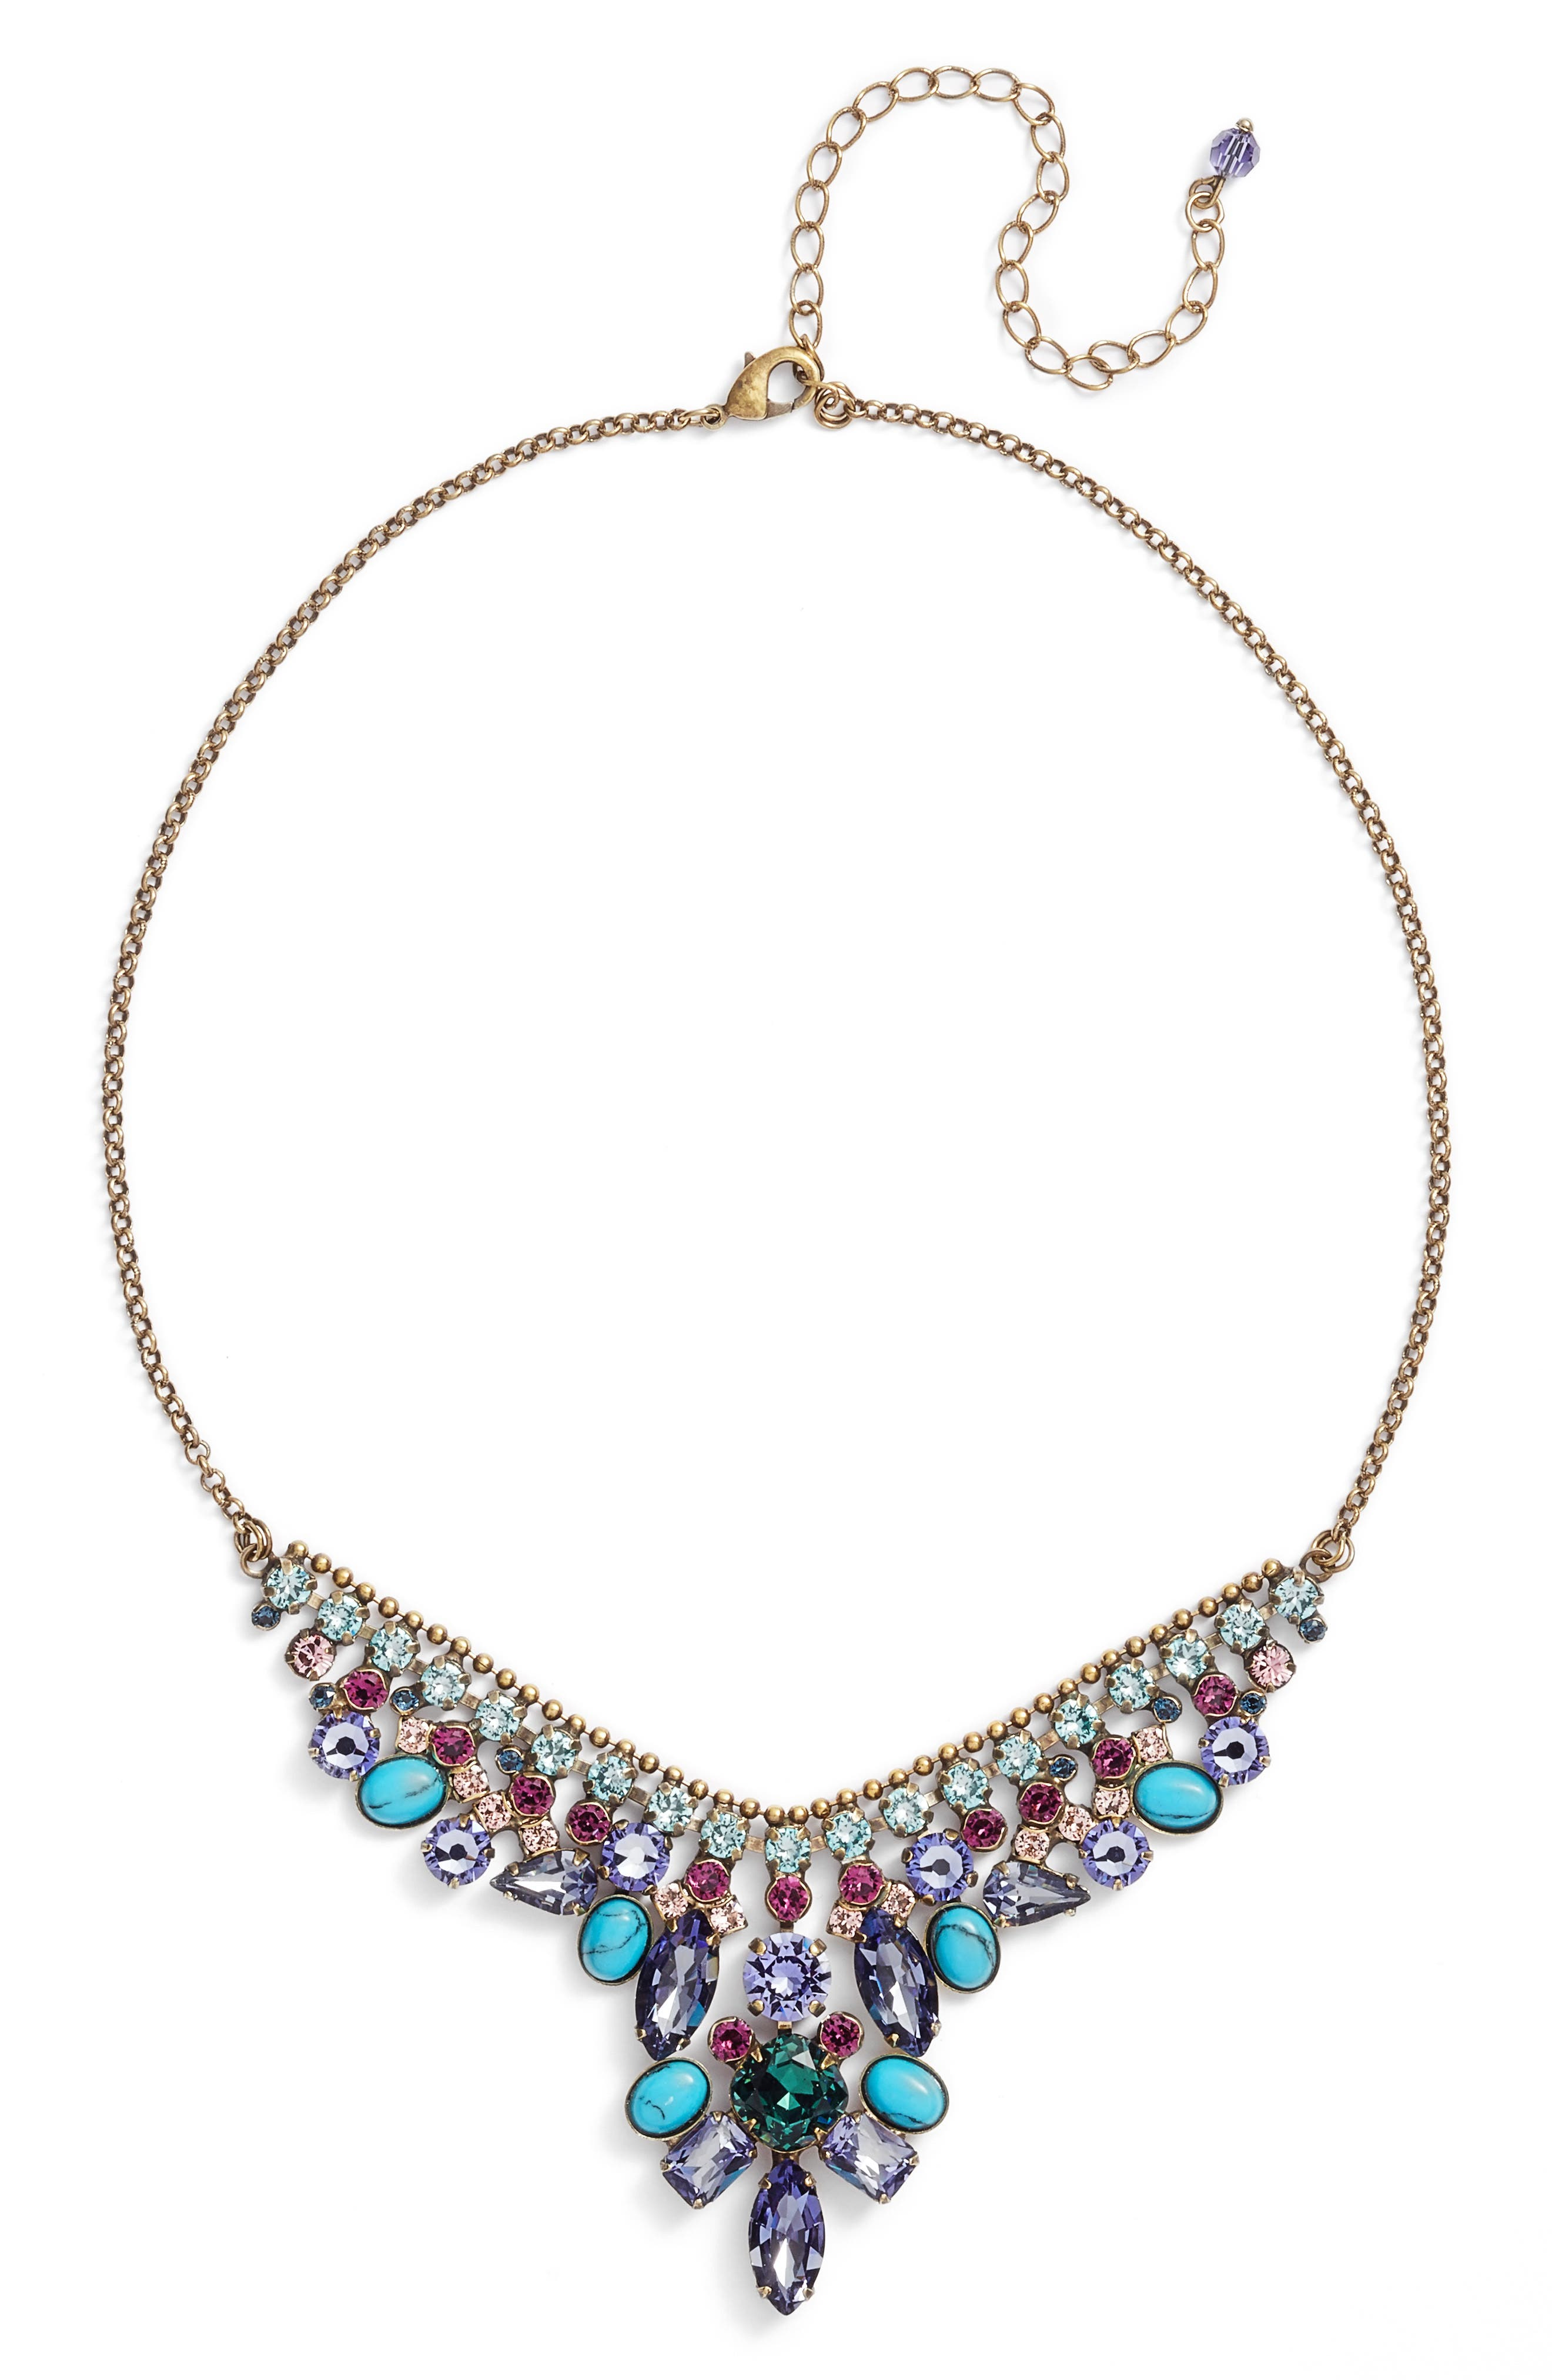 Vervain Frontal Necklace,                             Main thumbnail 1, color,                             Multi